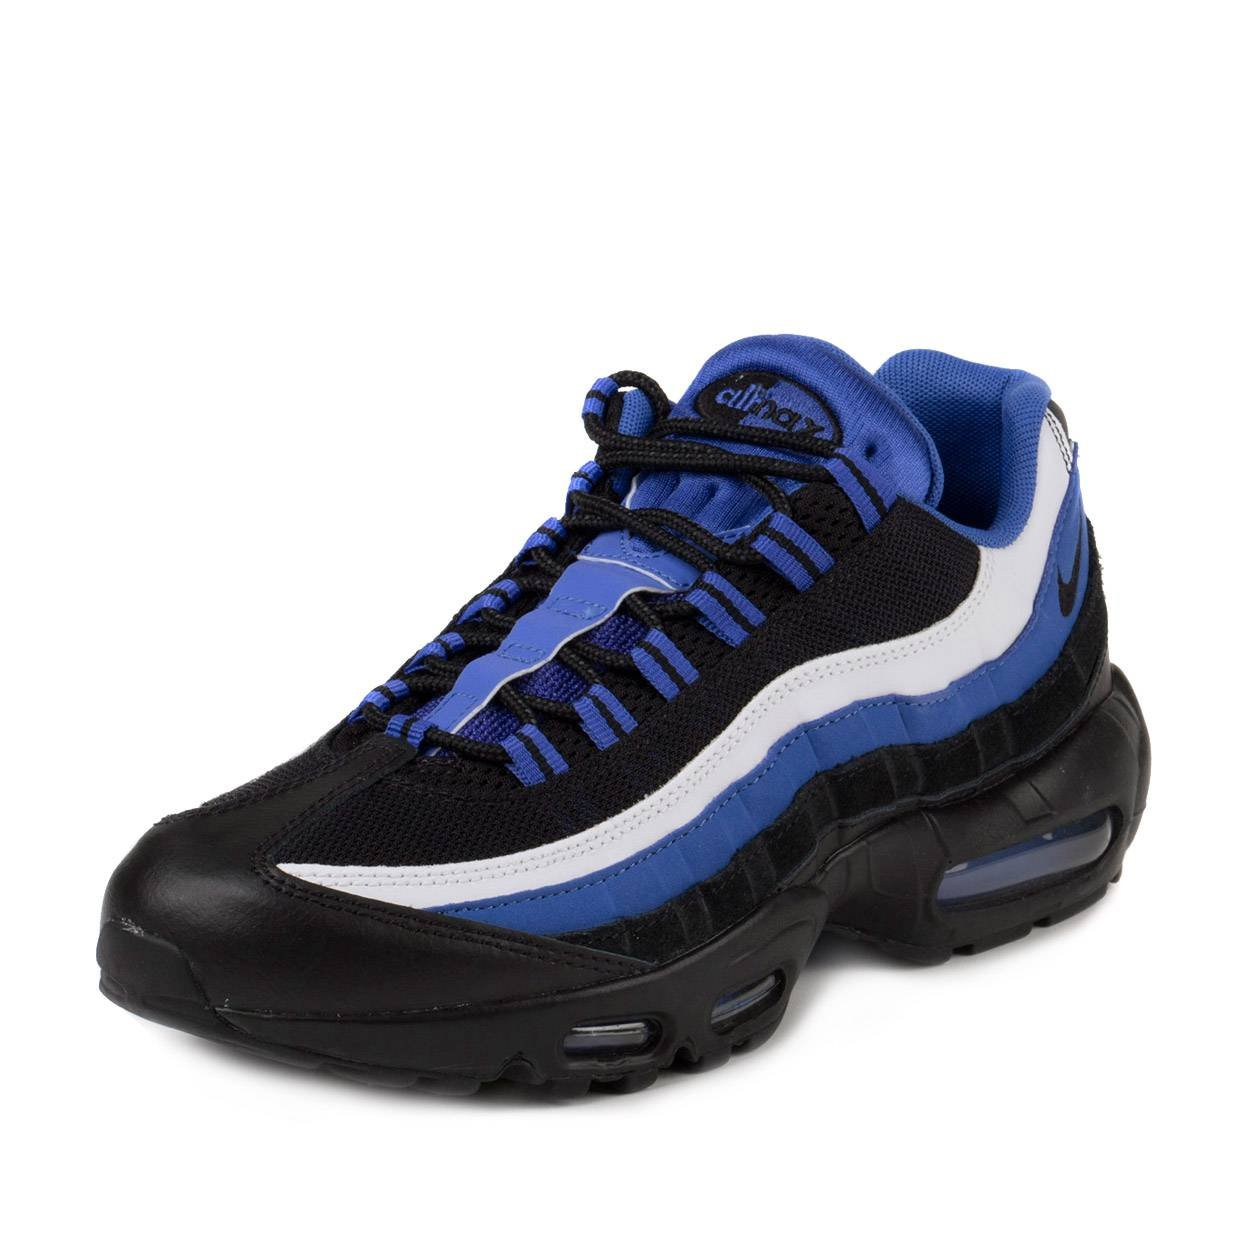 new style 5406c 7e594 Galleon - Nike Mens Air Max 95 Essential Persian Violet Black-White  Synthetic Size 9.5